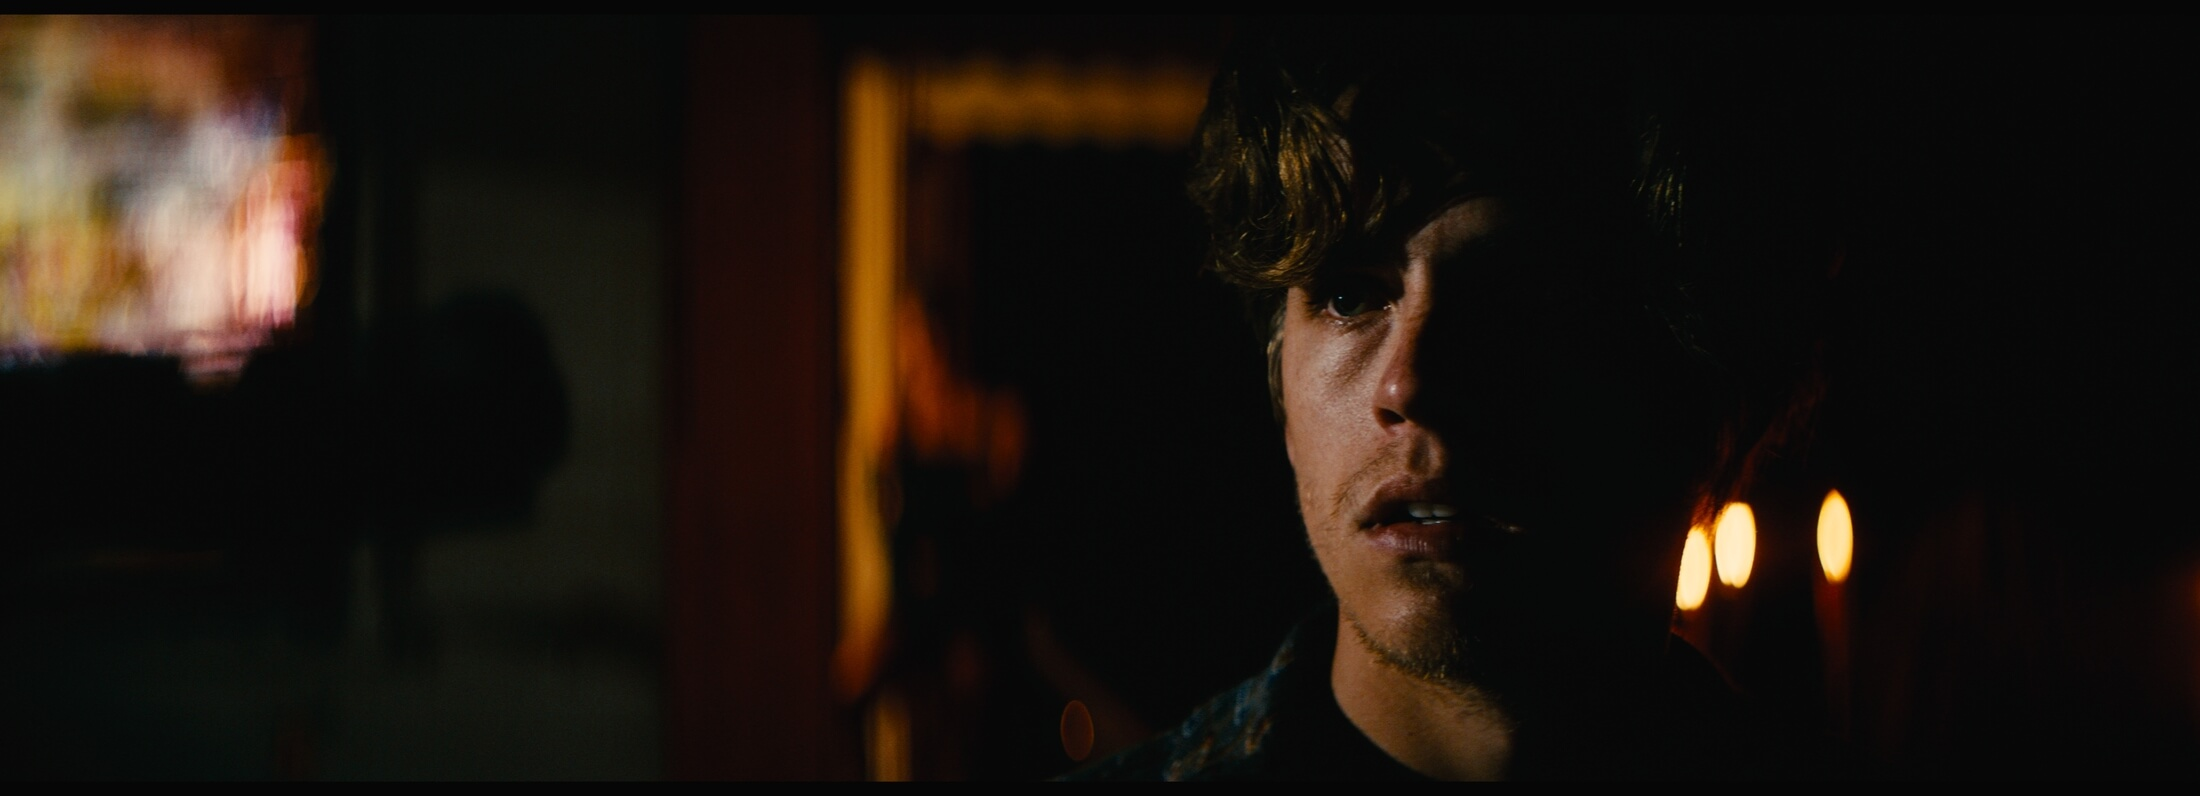 Movie Still from Tyger Tyger (2021) Dylan Sprouse